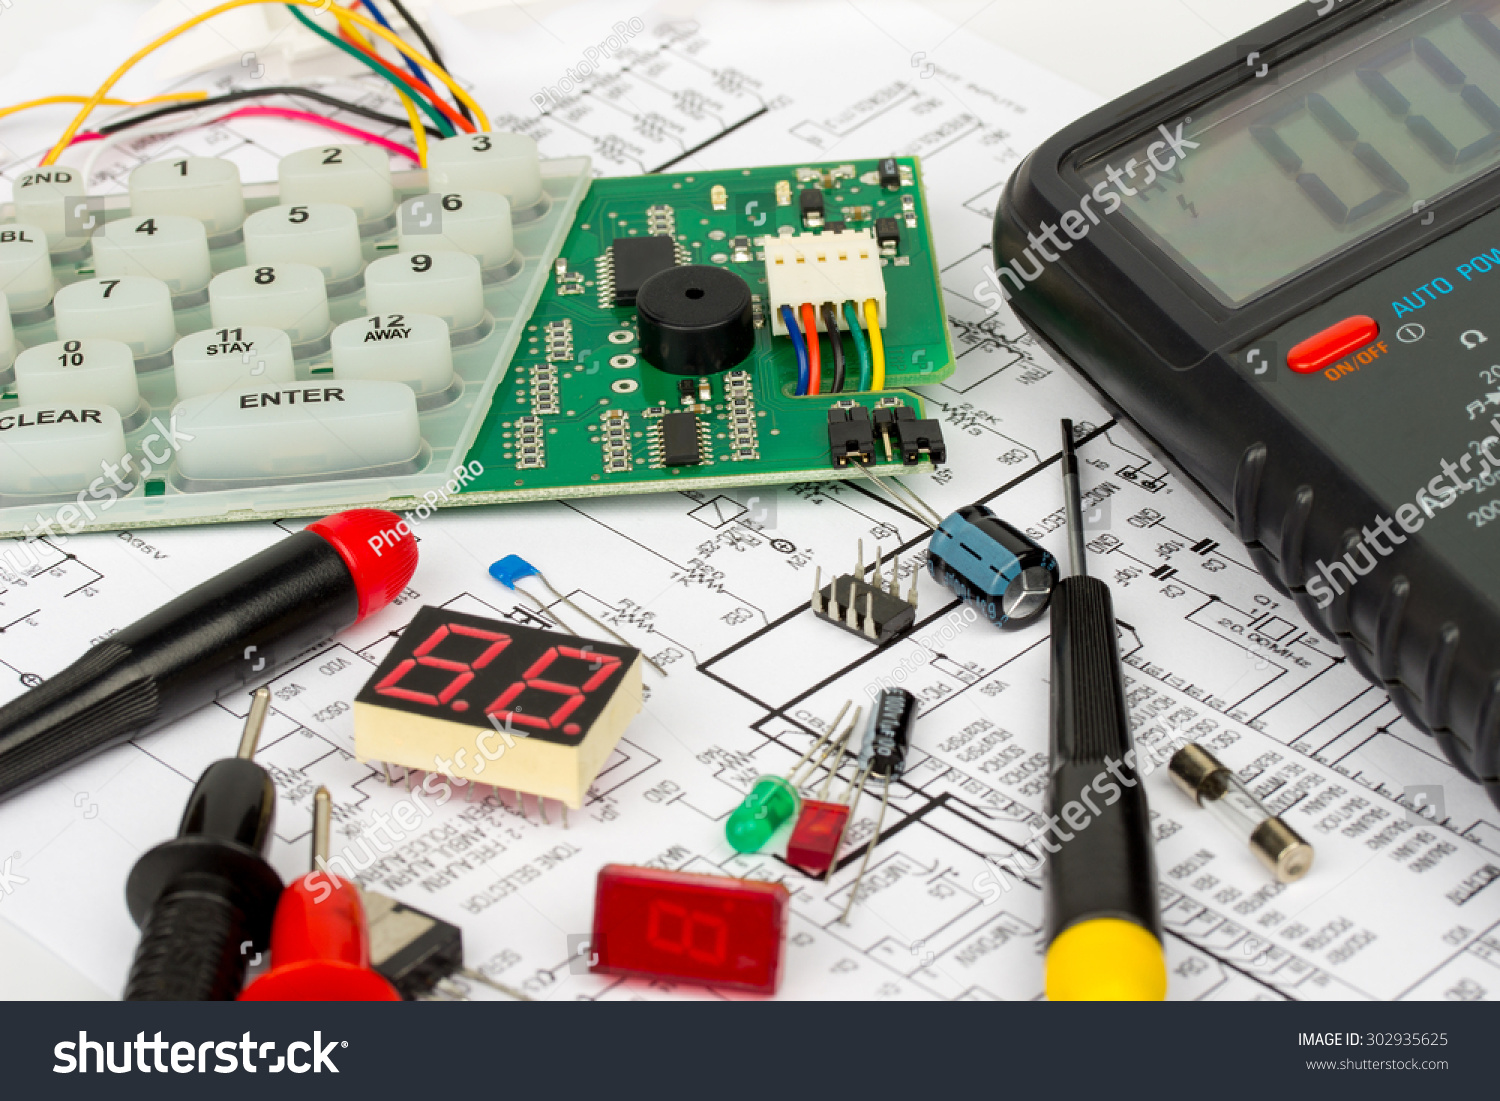 hight resolution of alarm workbench electronics repair stock photo 302935625 avopix com electronic resistance circuit diagram connections royalty free stock